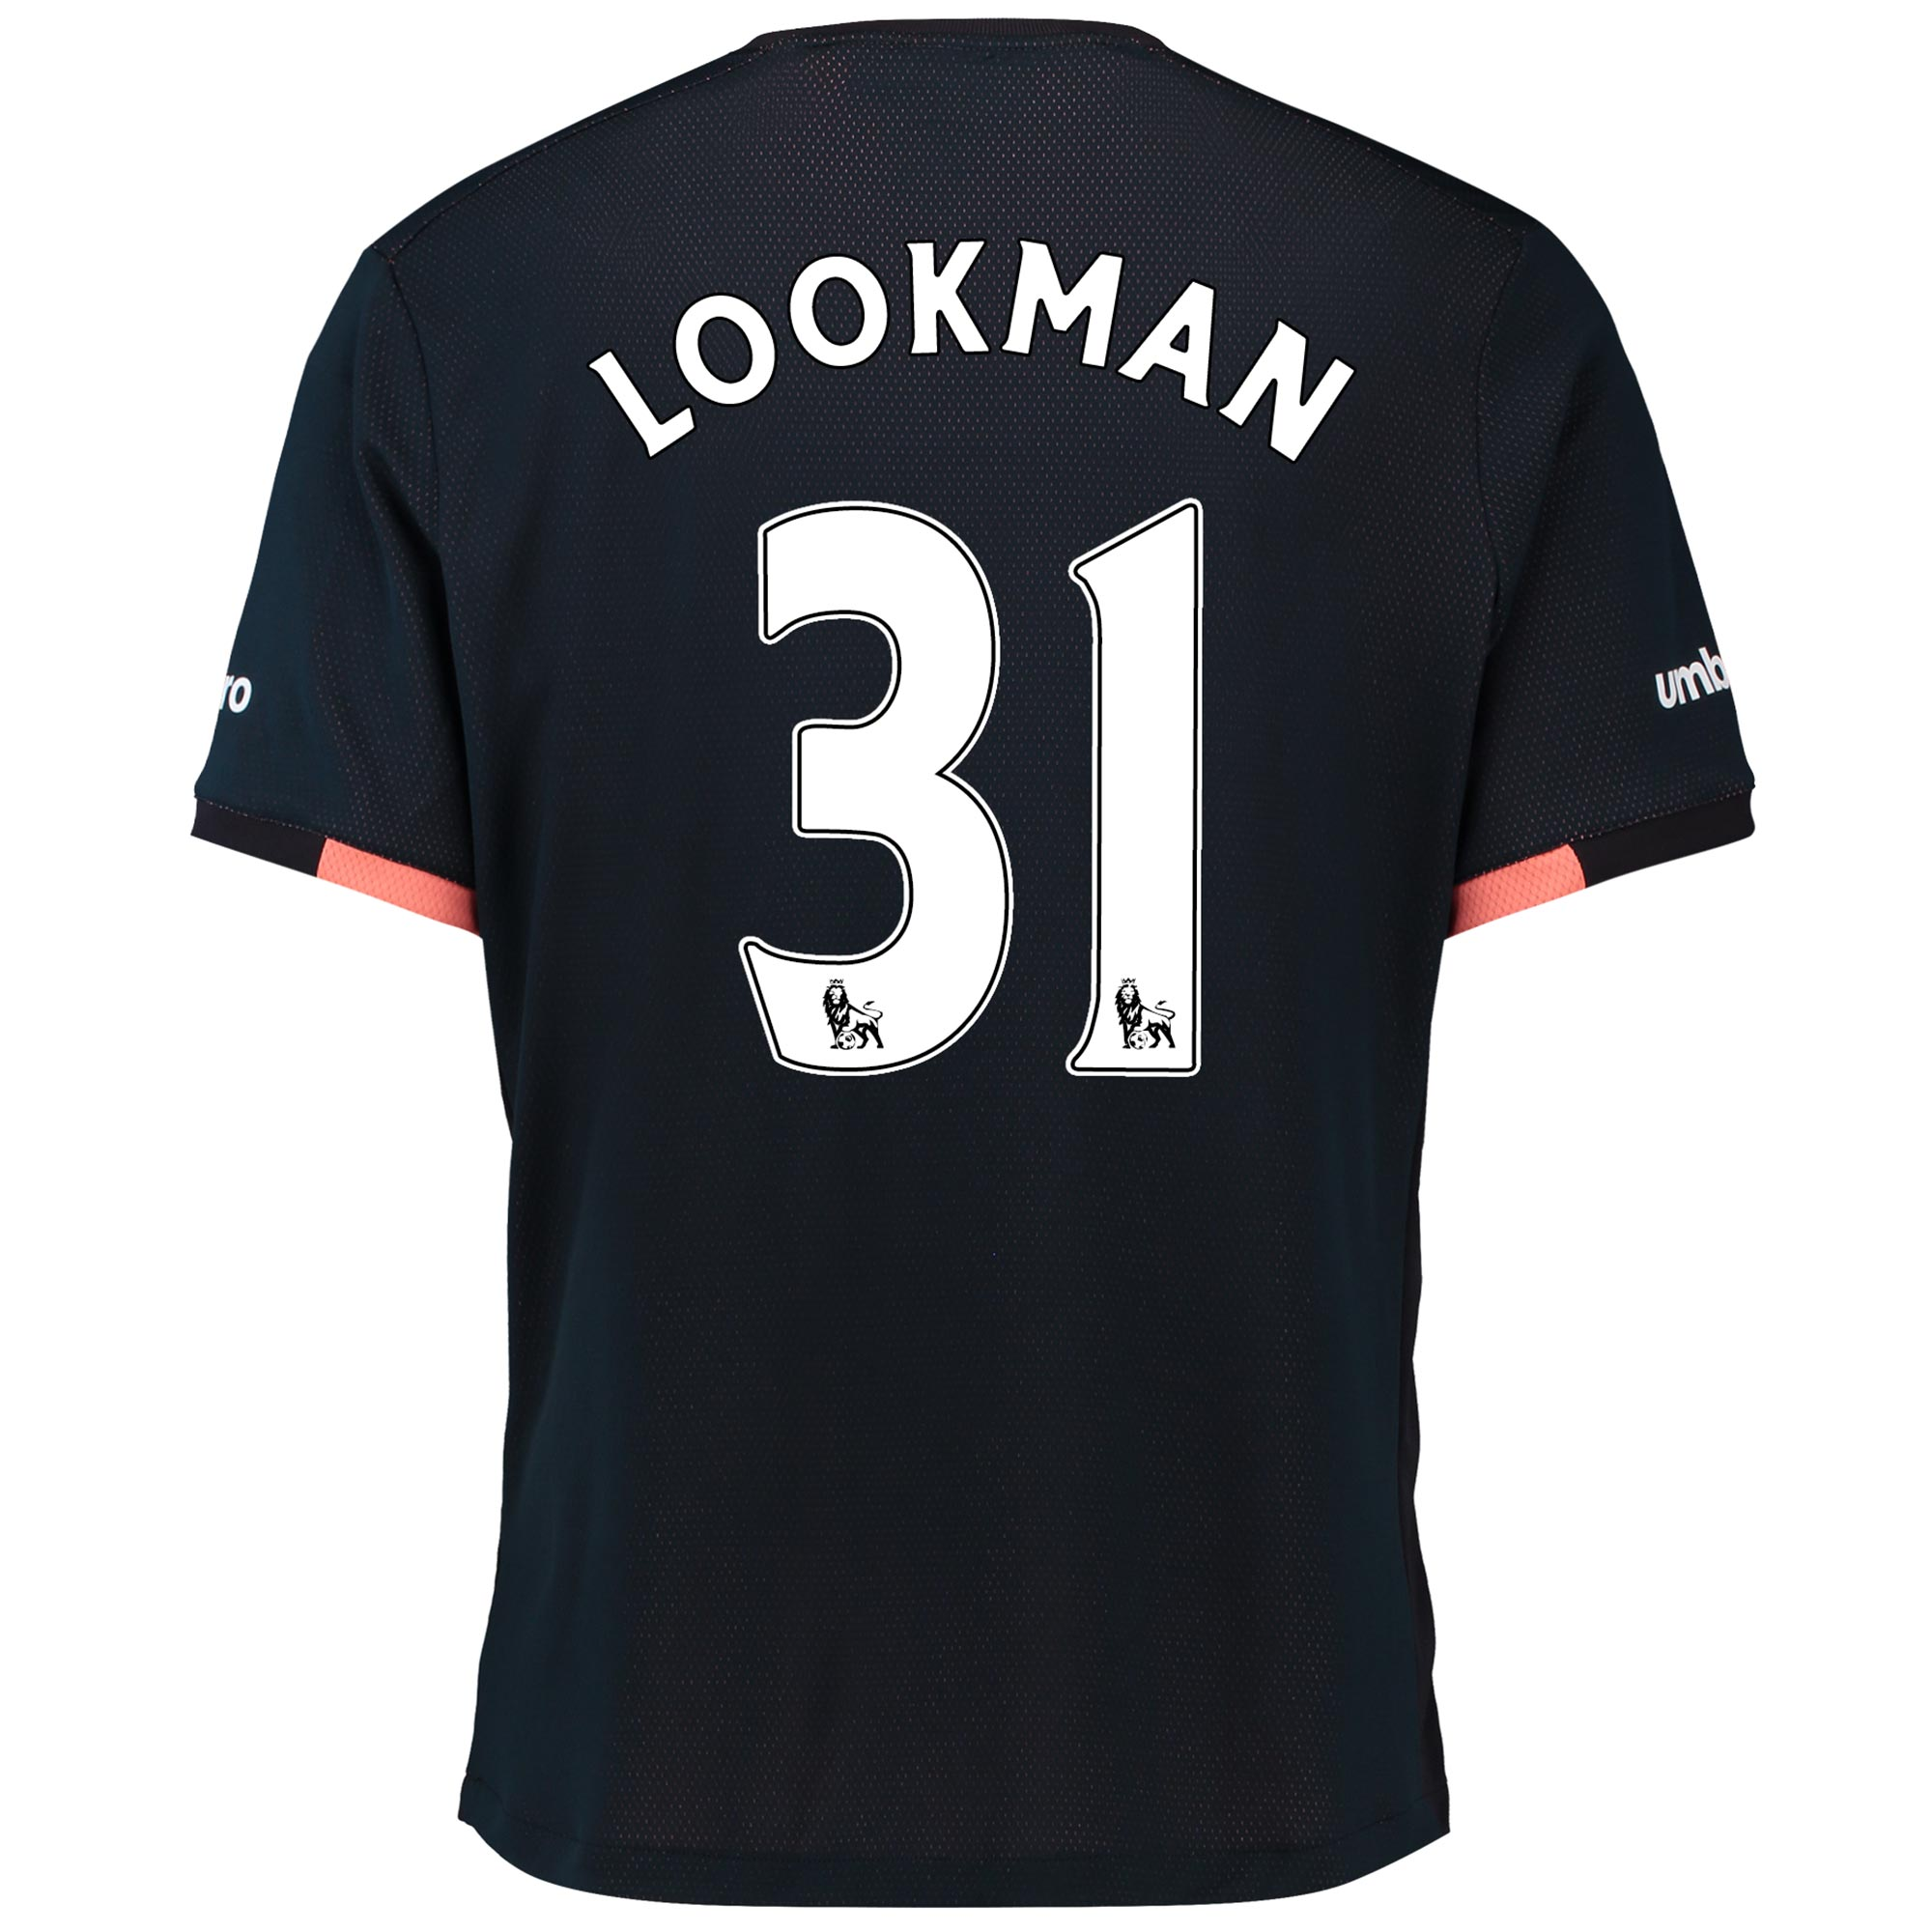 Everton Away Baby Kit 2016/17 with Lookman 31 printing